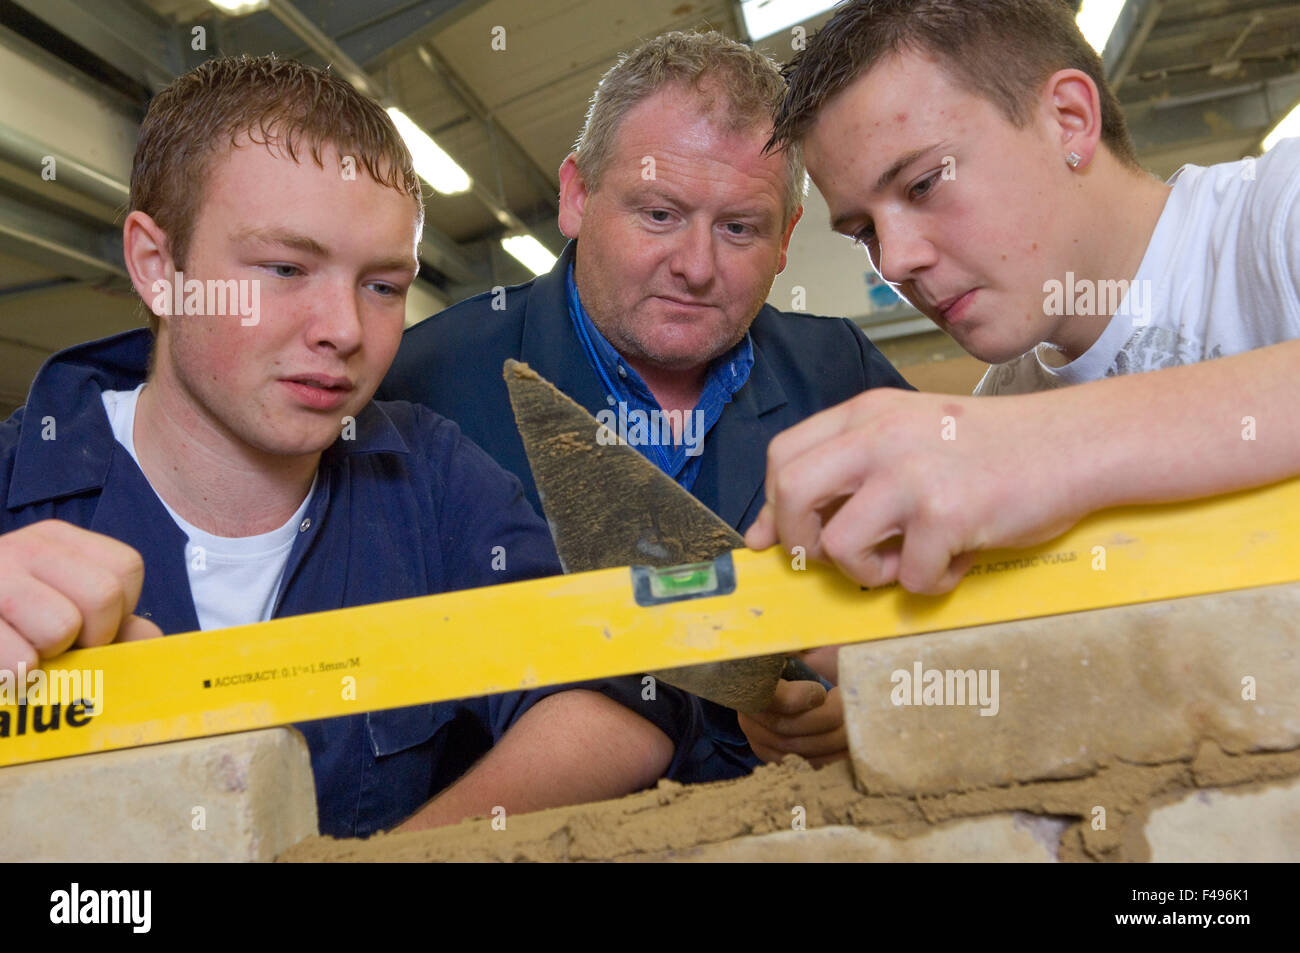 Hanham High School, Bristol construction department where they teach building and woodworking skills. Stock Photo